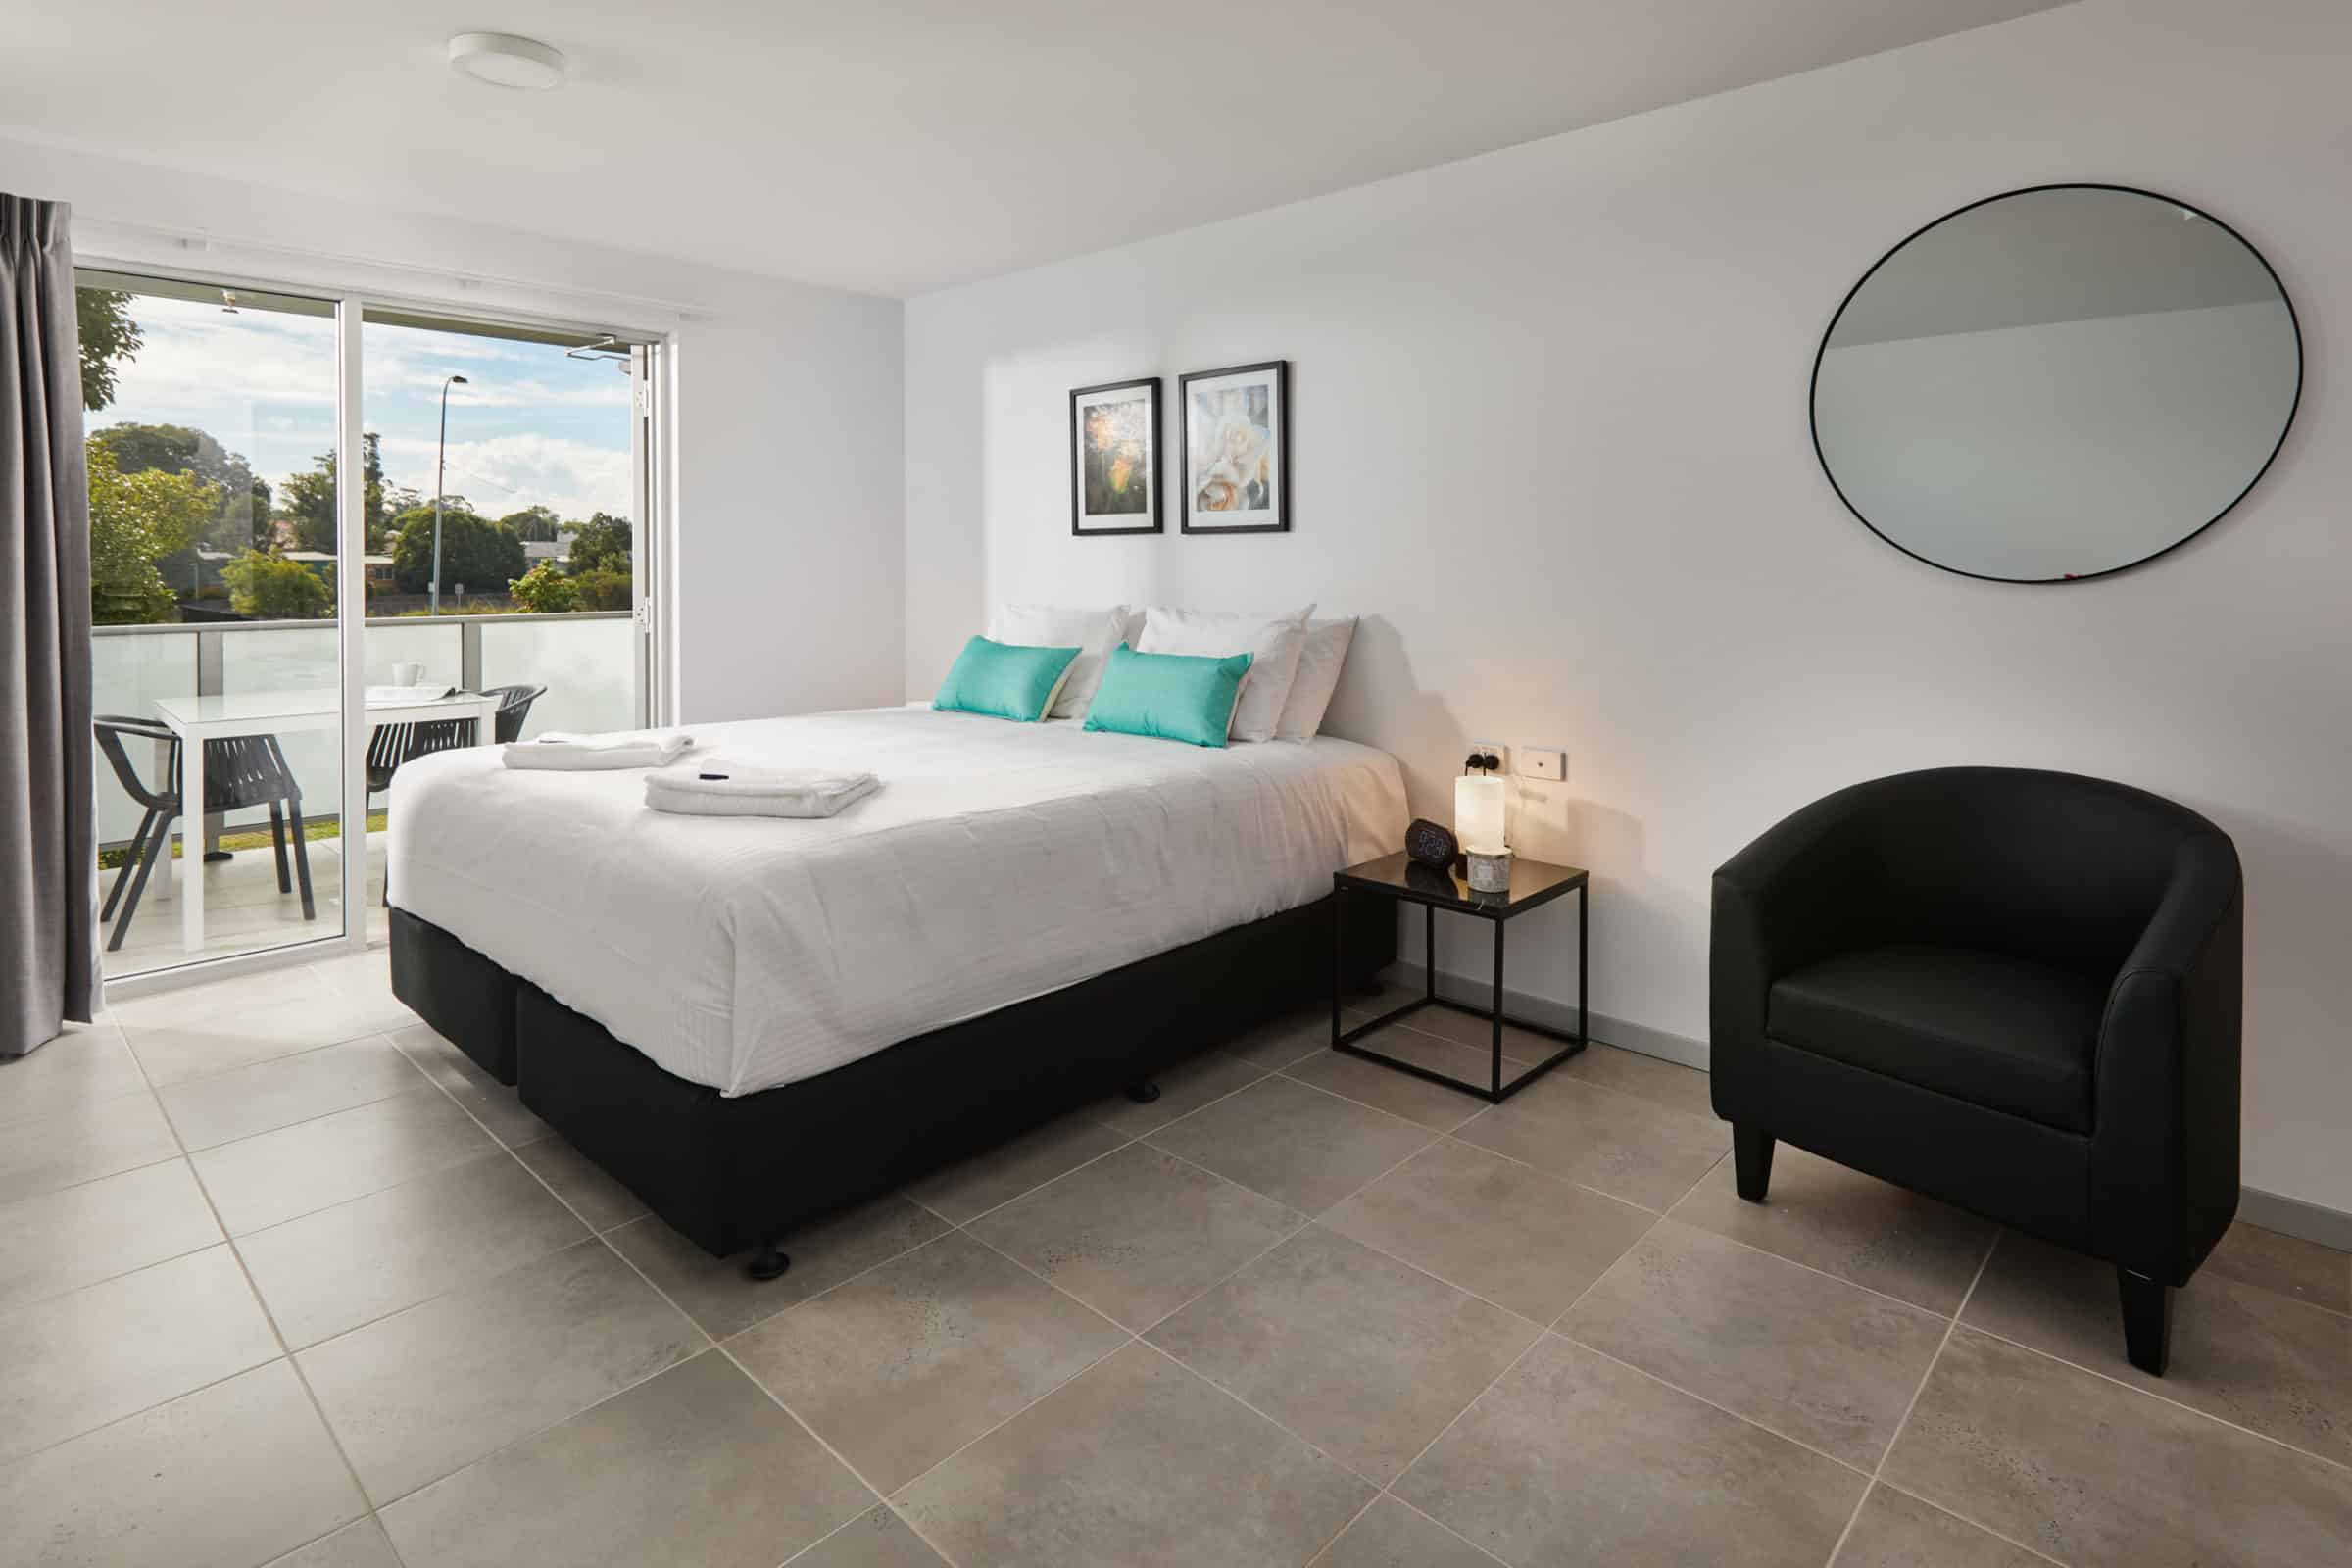 East Maitland Executive Apartments - https://www.newcastleapartments.com.au/wp-content/uploads/2020/03/bed-1-scaled.jpg